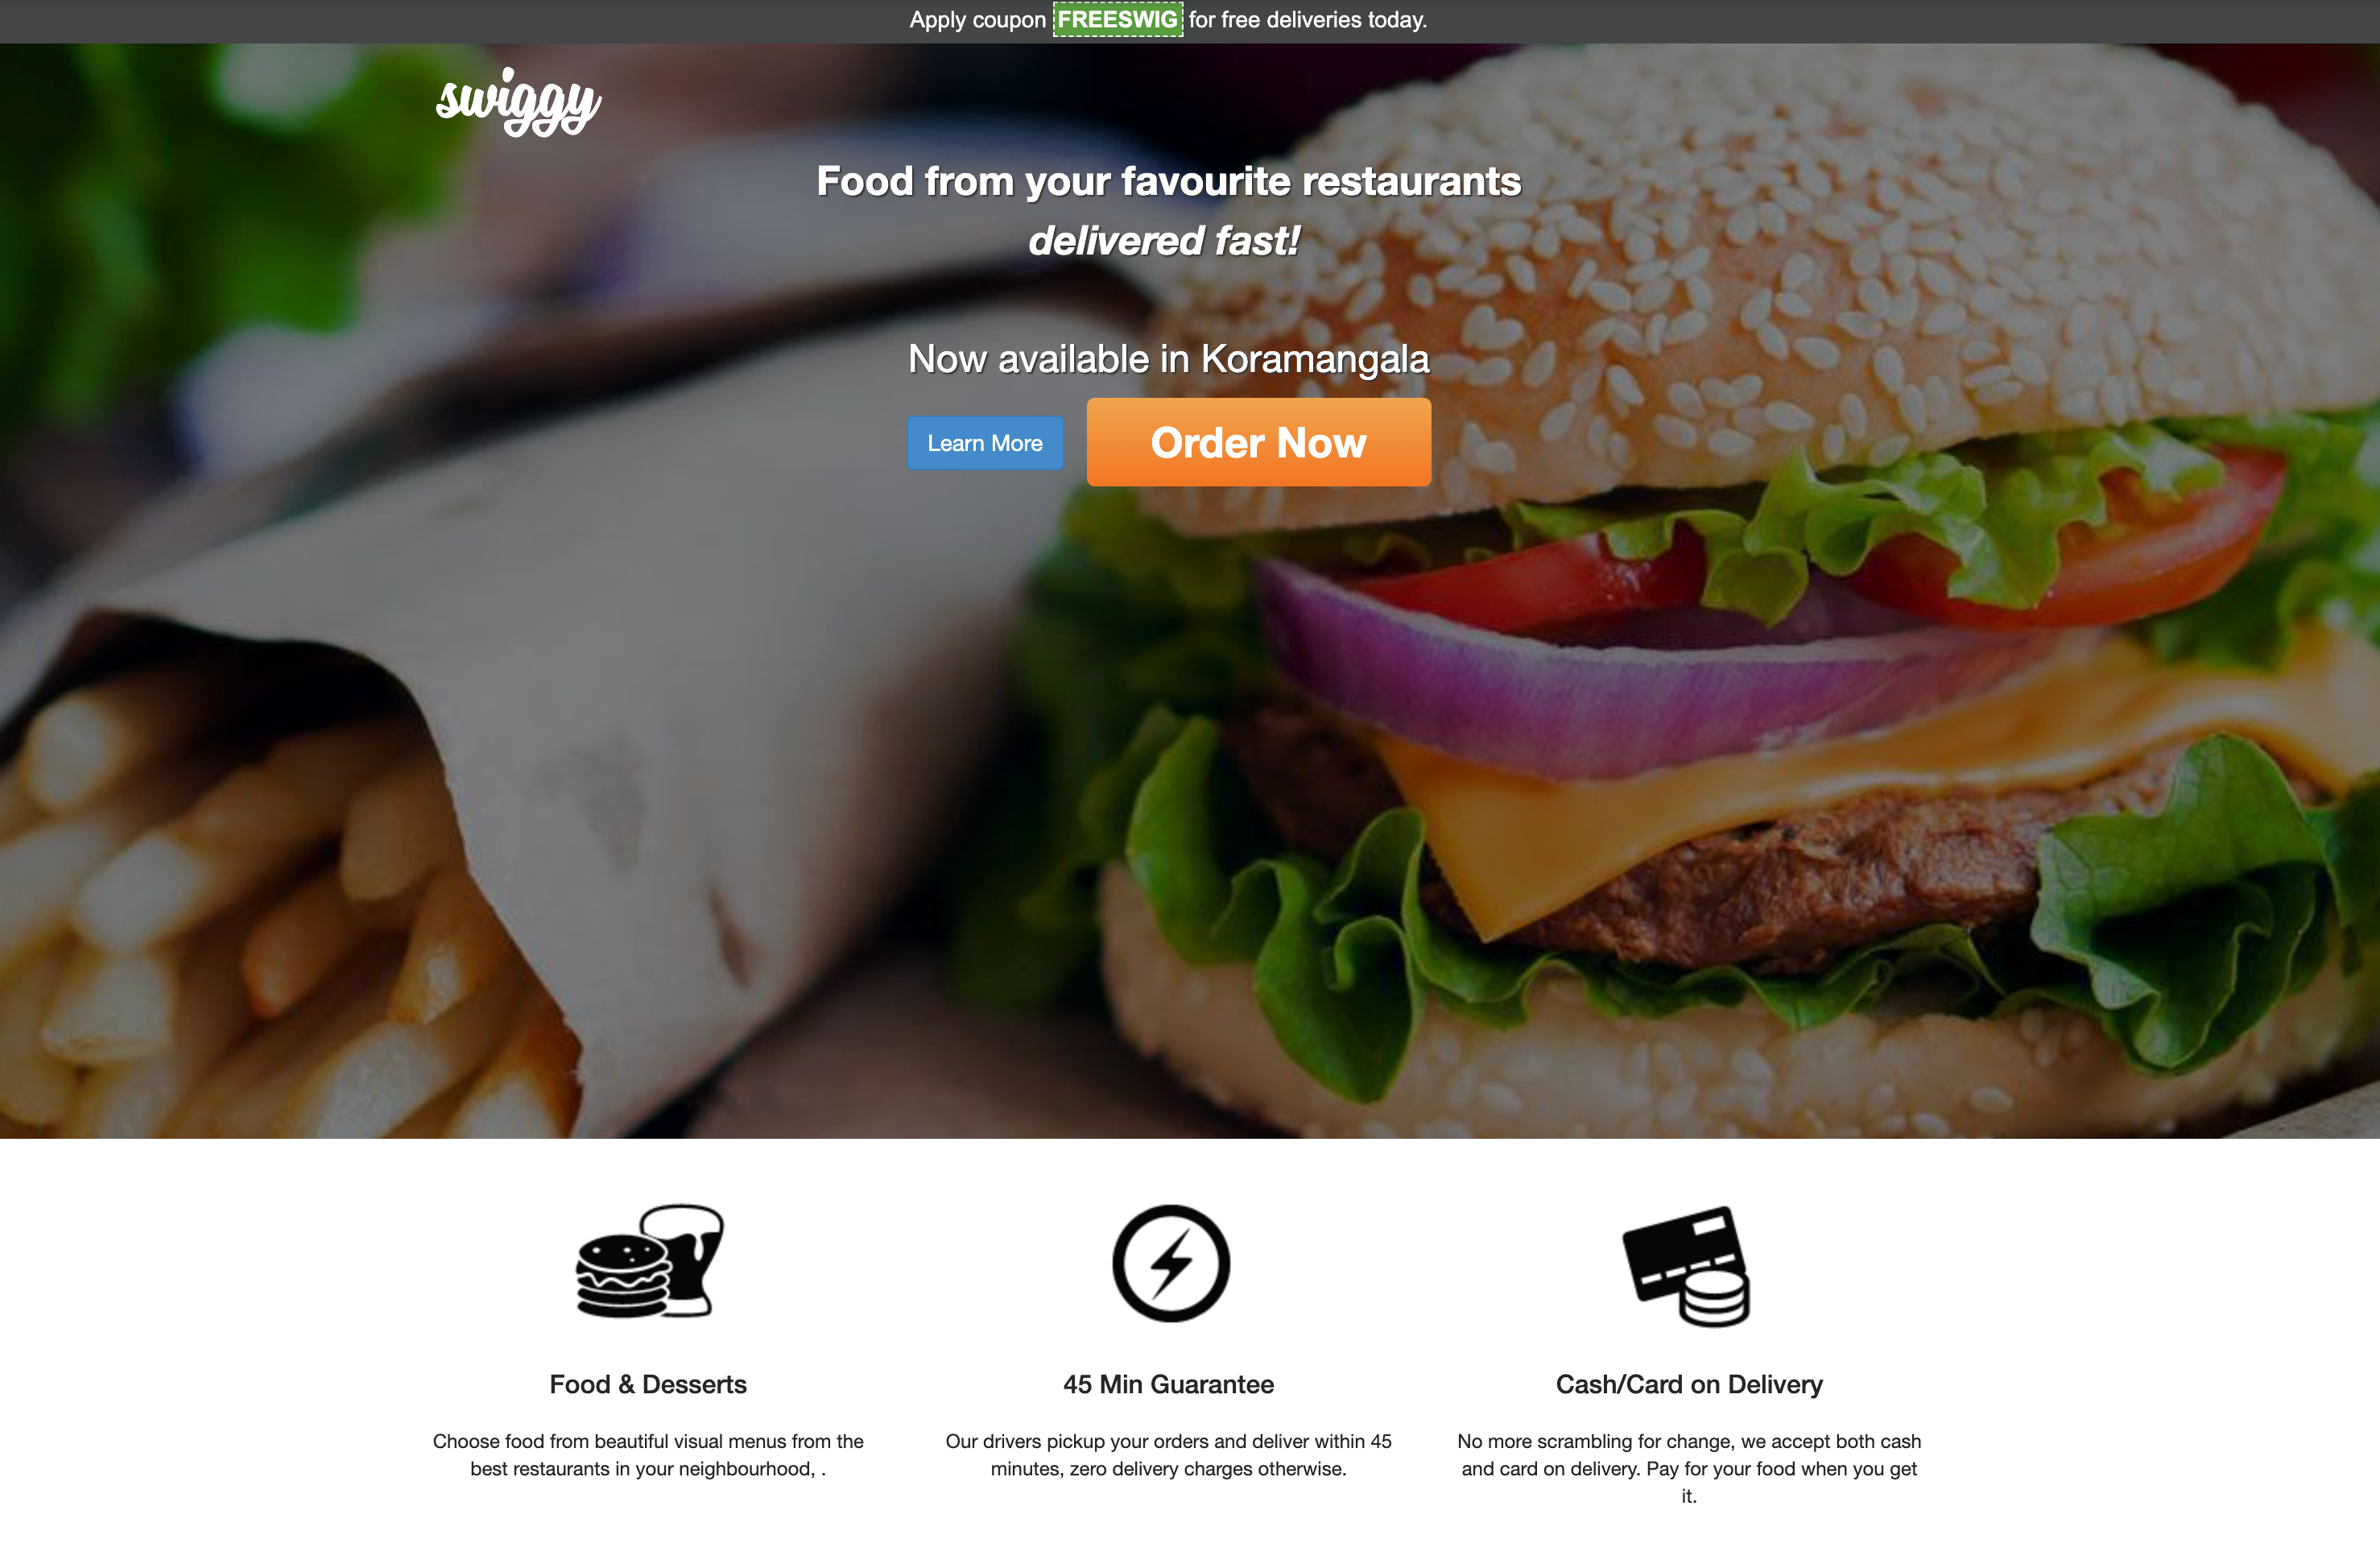 Swiggy's website at launch